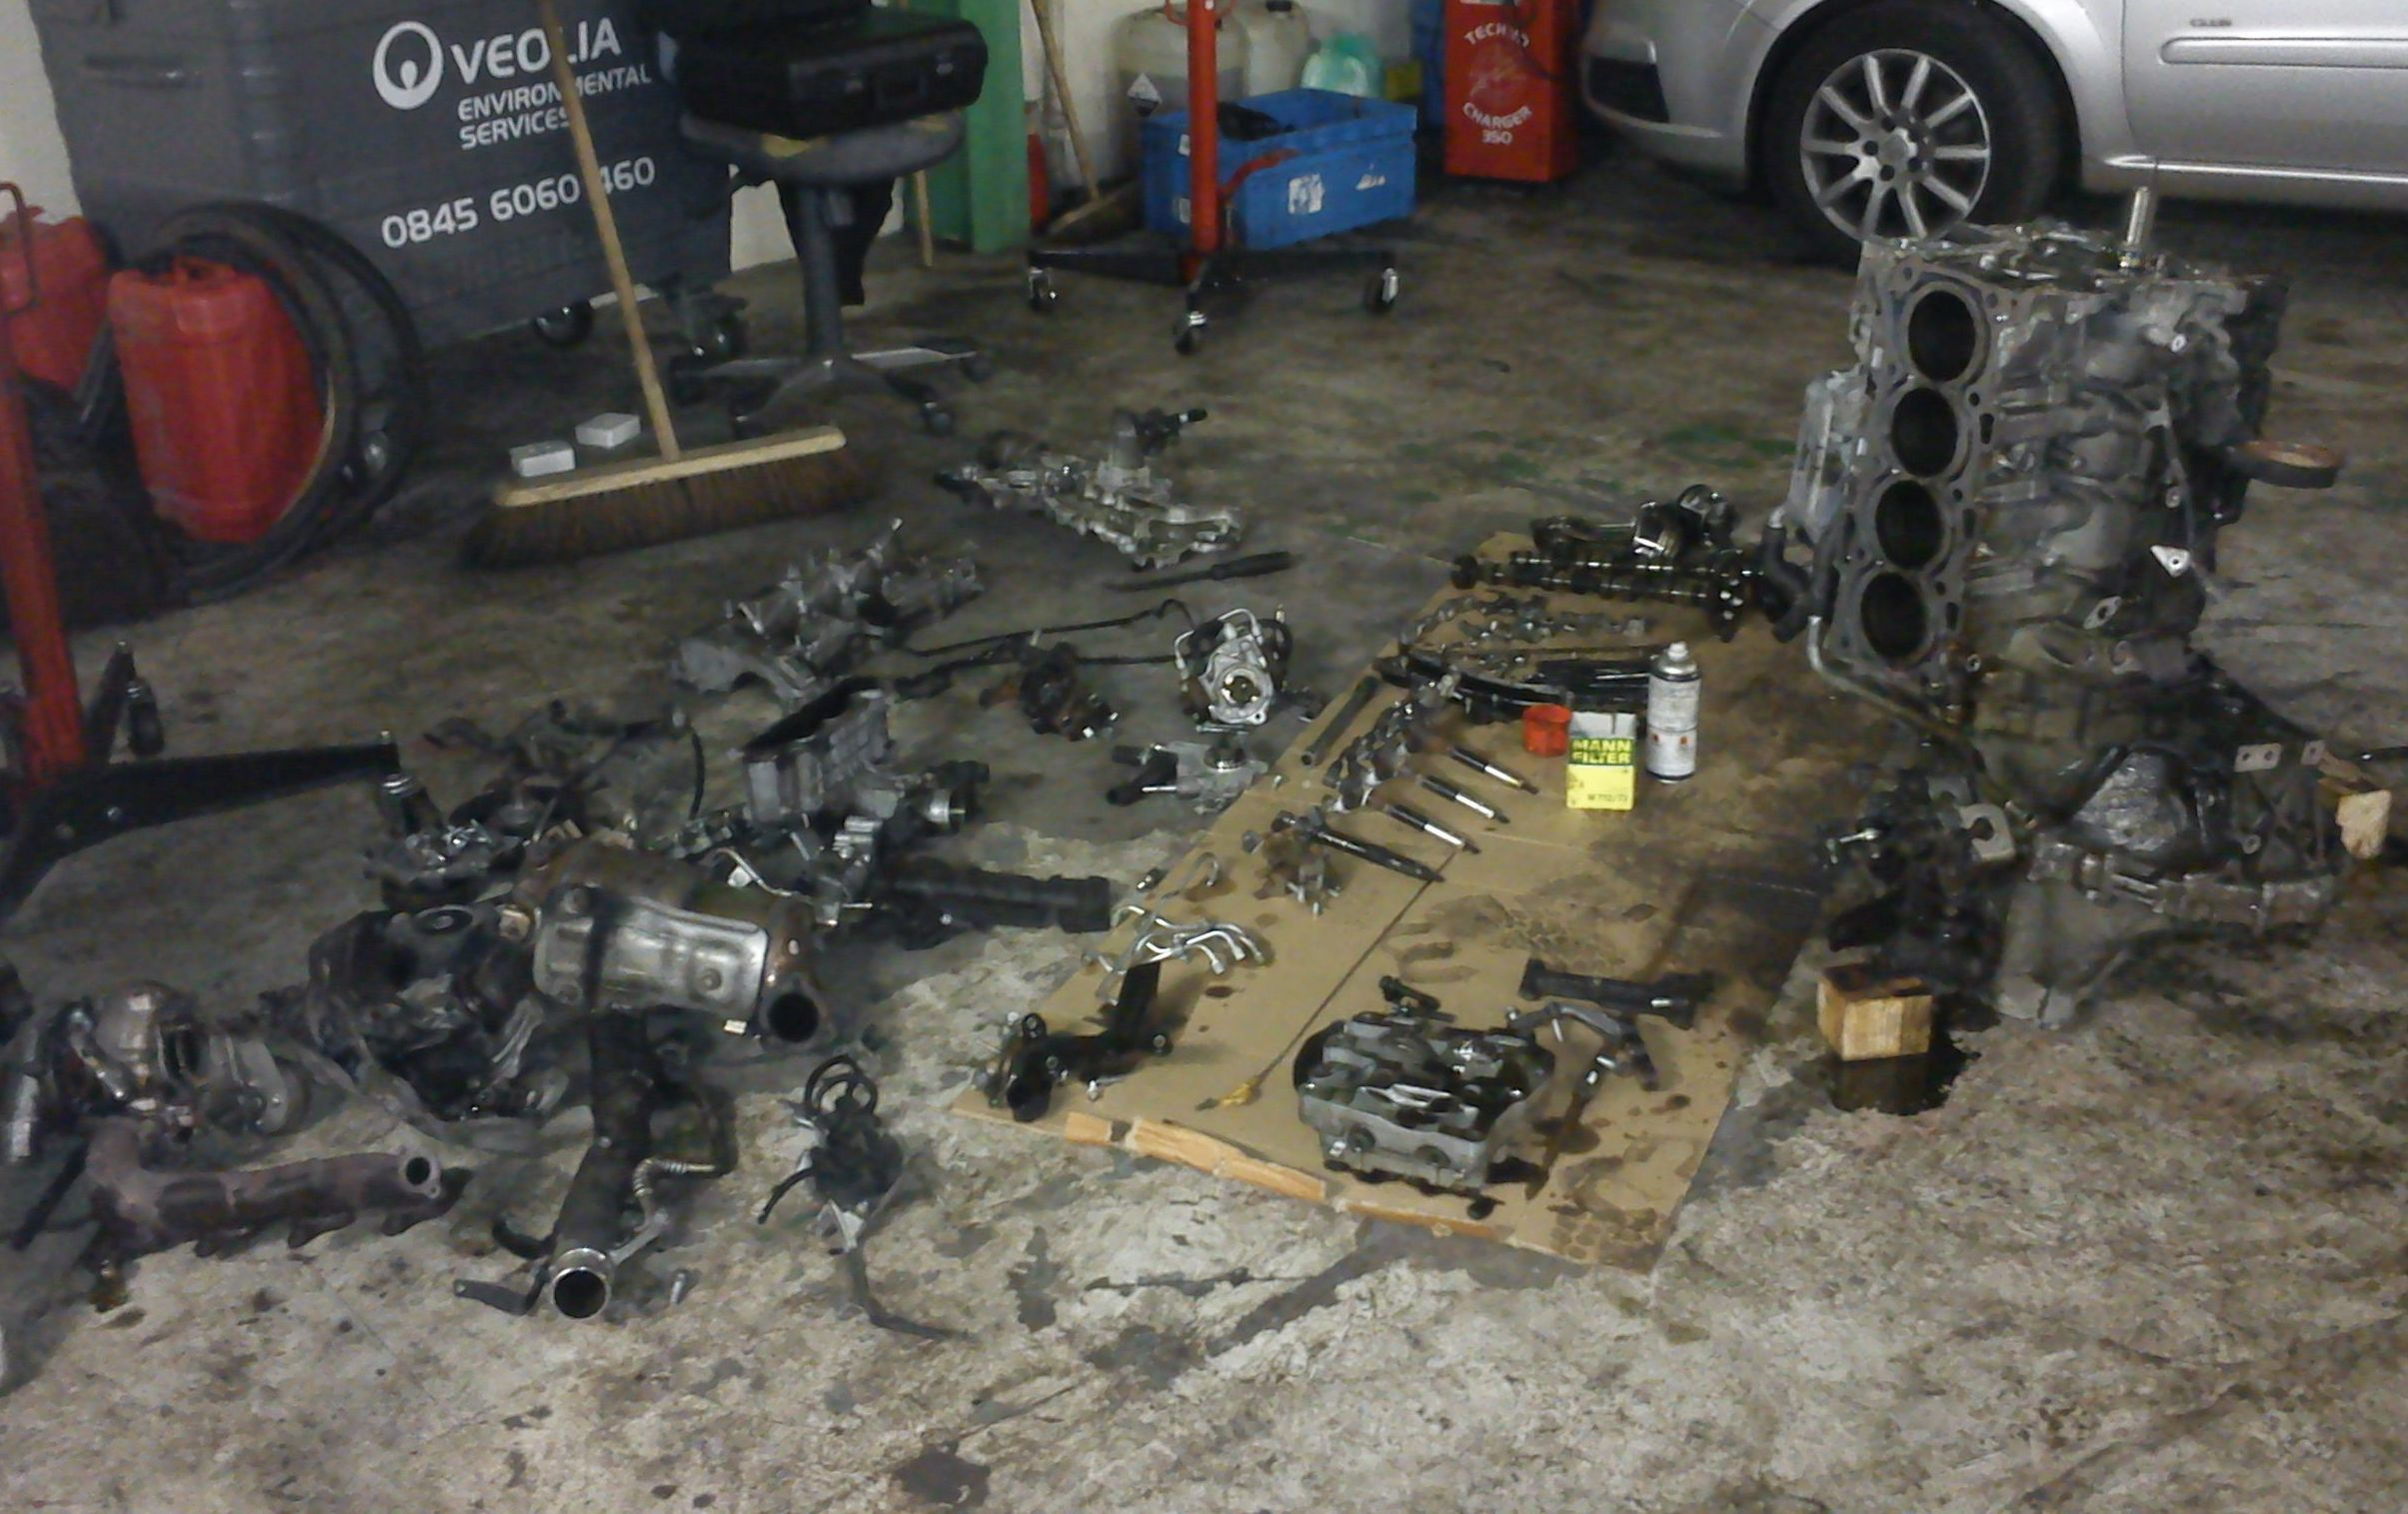 2.2 Toyota diesel engine in pieces